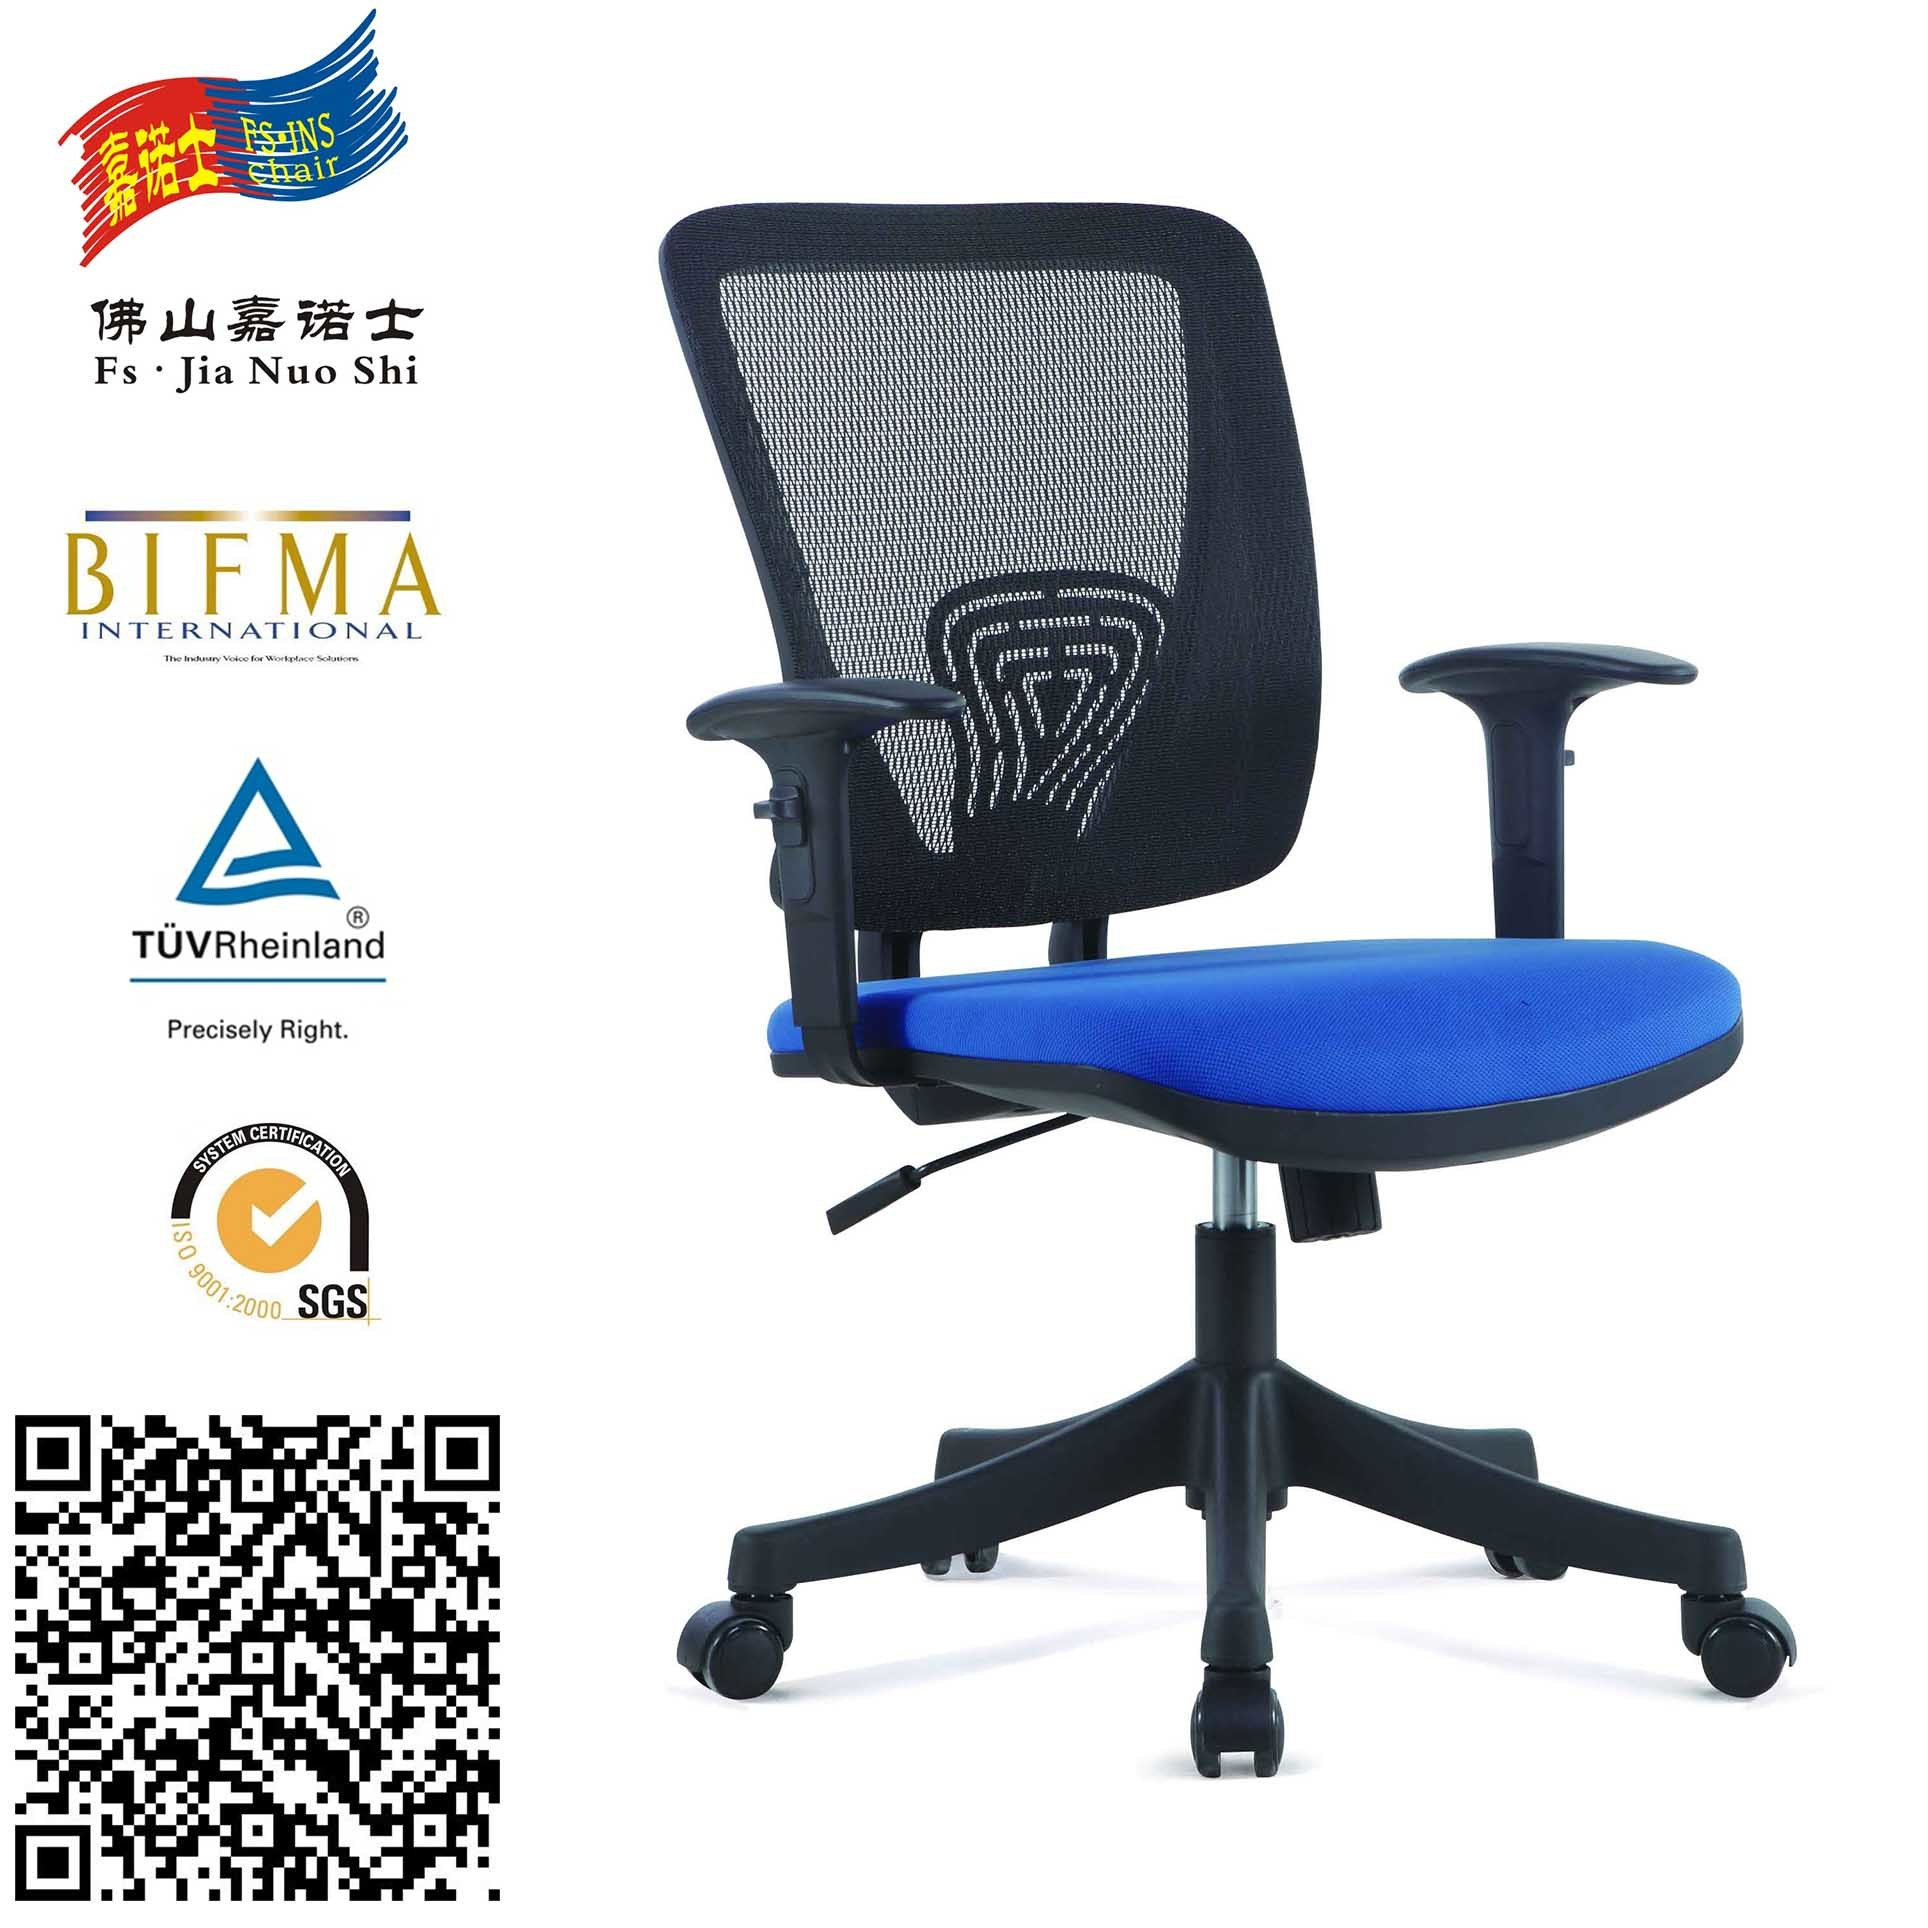 Fantastic Hot Item Promotional Best Small Swivel Fabric Chair For Home Office Or Building Office Squirreltailoven Fun Painted Chair Ideas Images Squirreltailovenorg